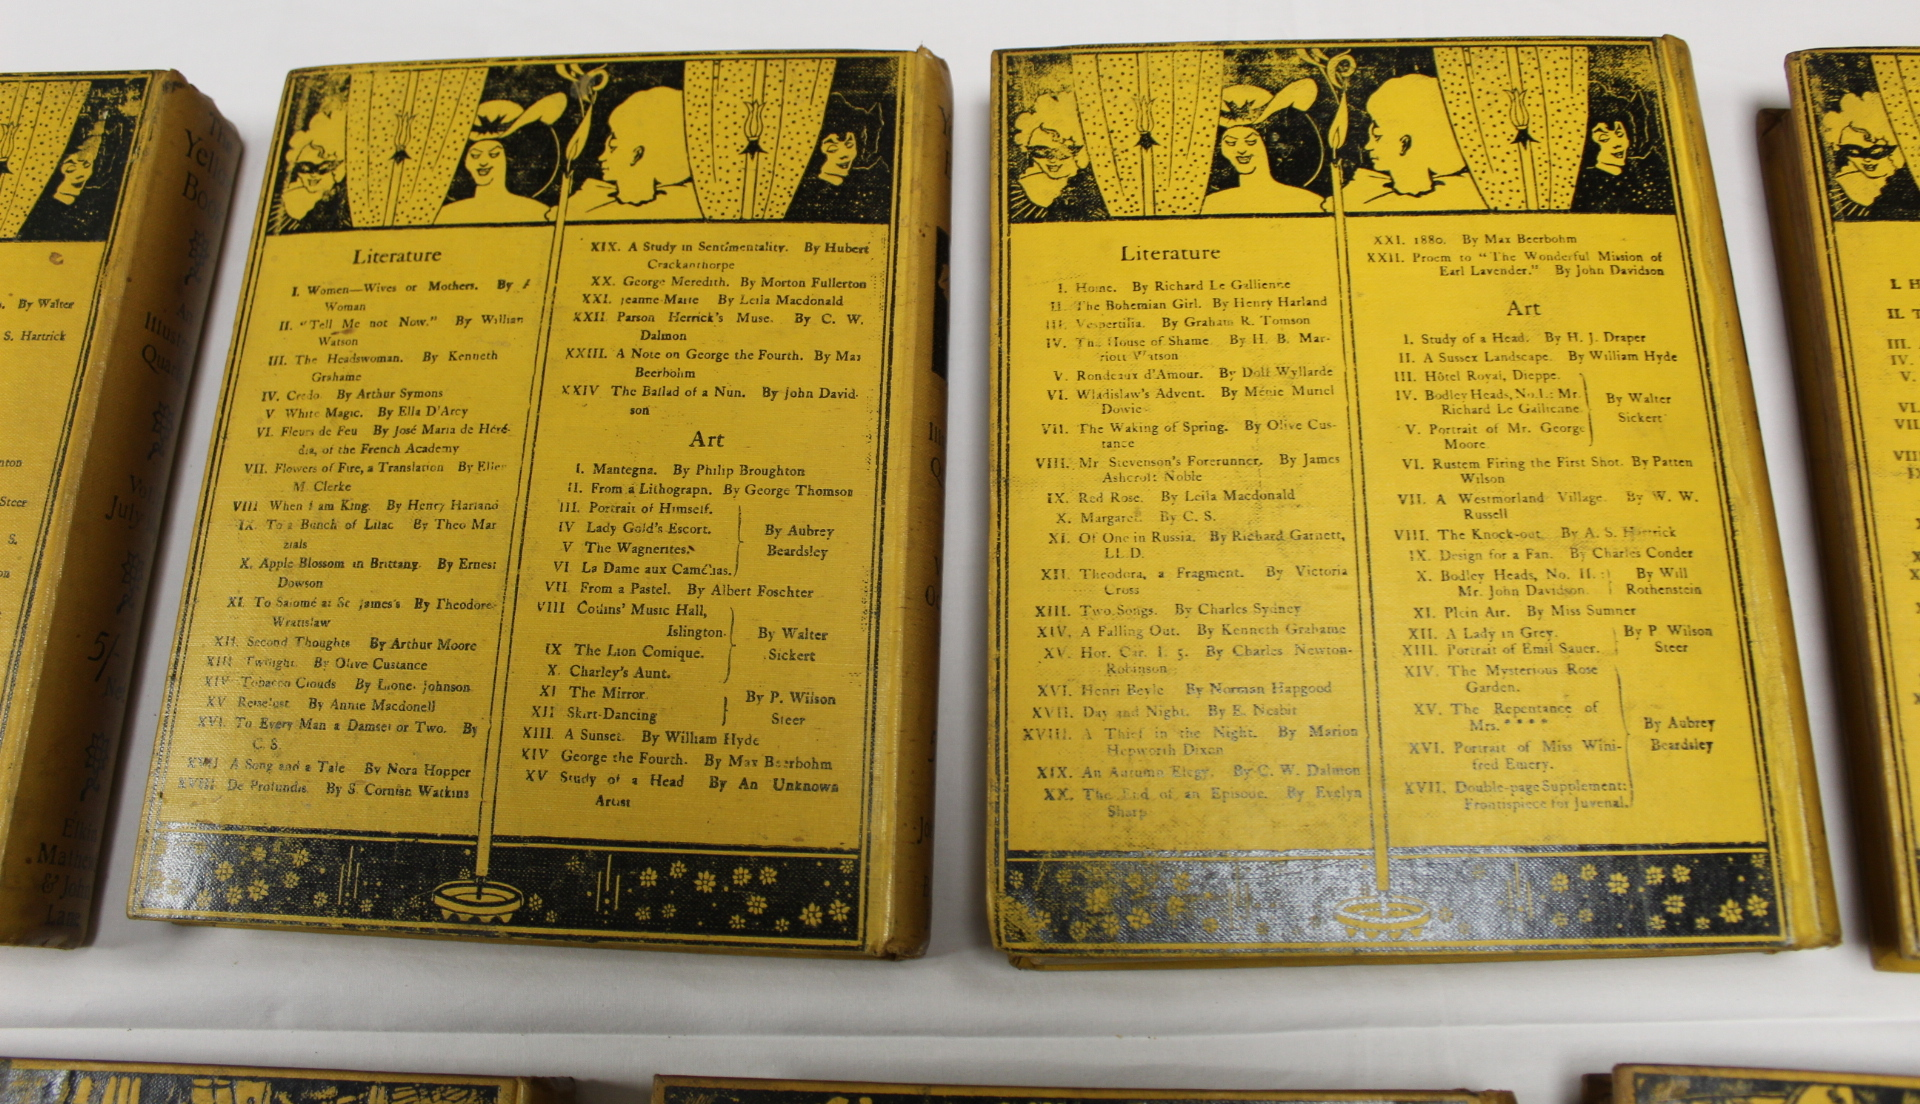 THE YELLOW BOOK.An Illustrated Quarterly. A set of 13 vols., many fine illus. Small quarto. - Image 37 of 45